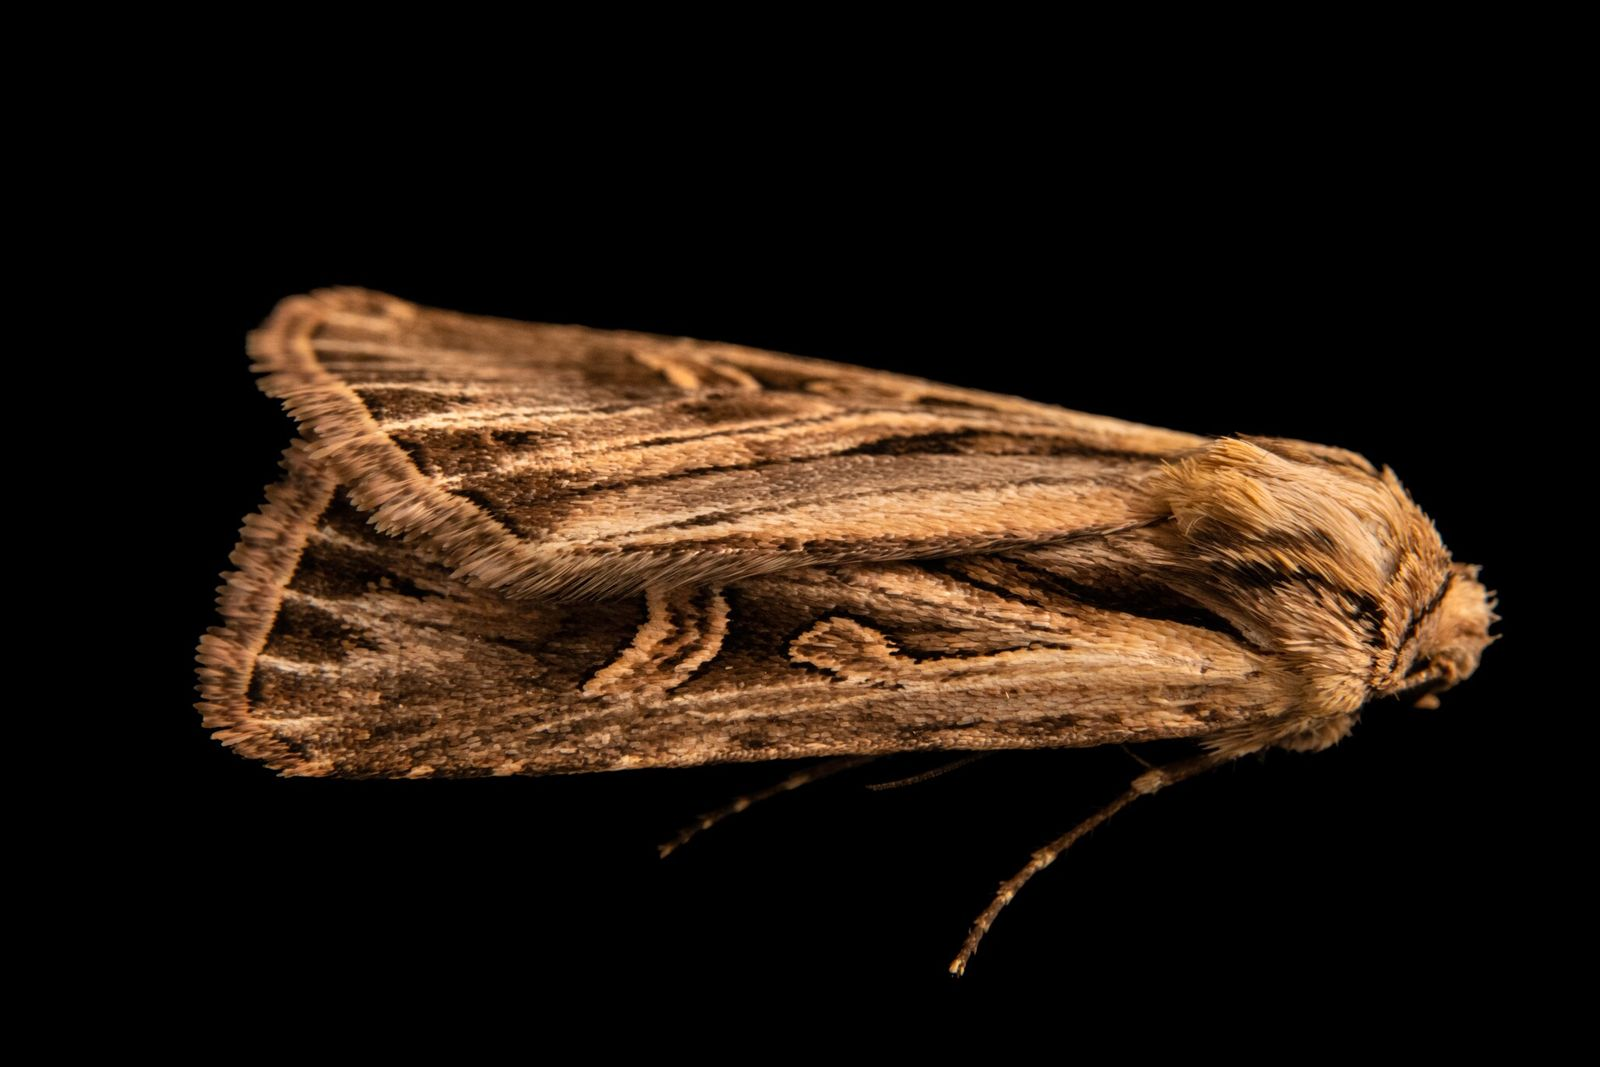 Joel Sartore captured the long-toothed dart moth in September 2020 near Santa Fe, New Mexico.